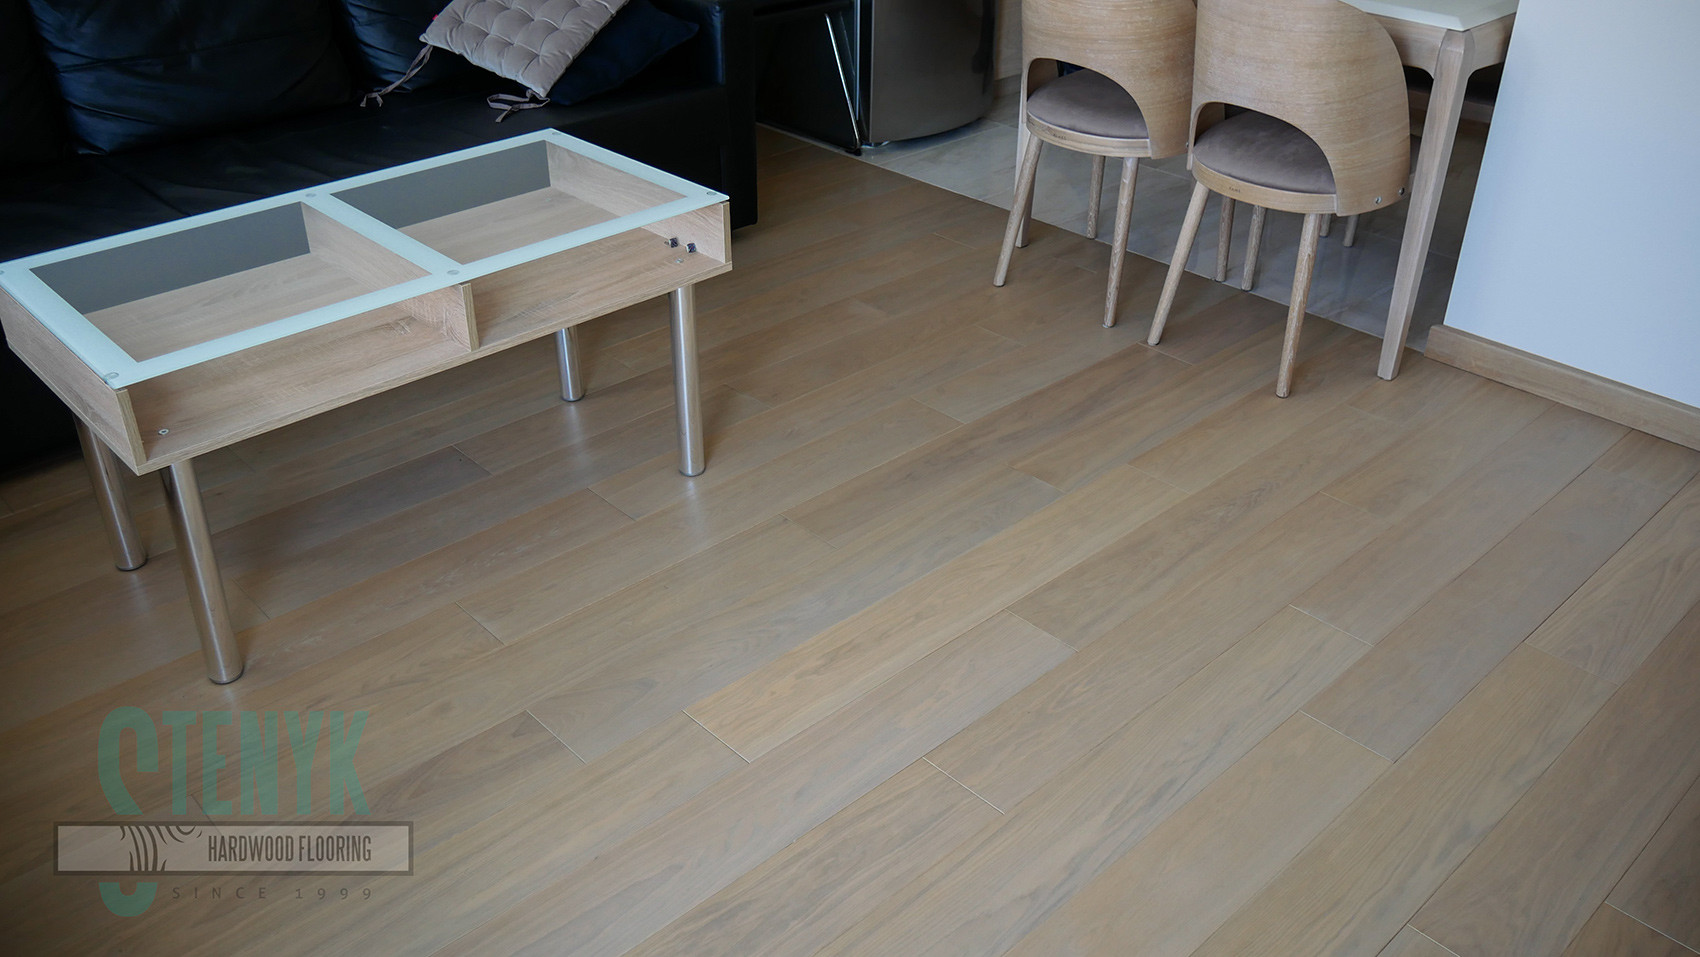 19 Stunning How to Select Hardwood Floor Color 2021 free download how to select hardwood floor color of manufacturer of parquet solid wood and engineered flooring in pertaining to 160mm in warsaw apartment select grade color cornsilk with maintenance mat